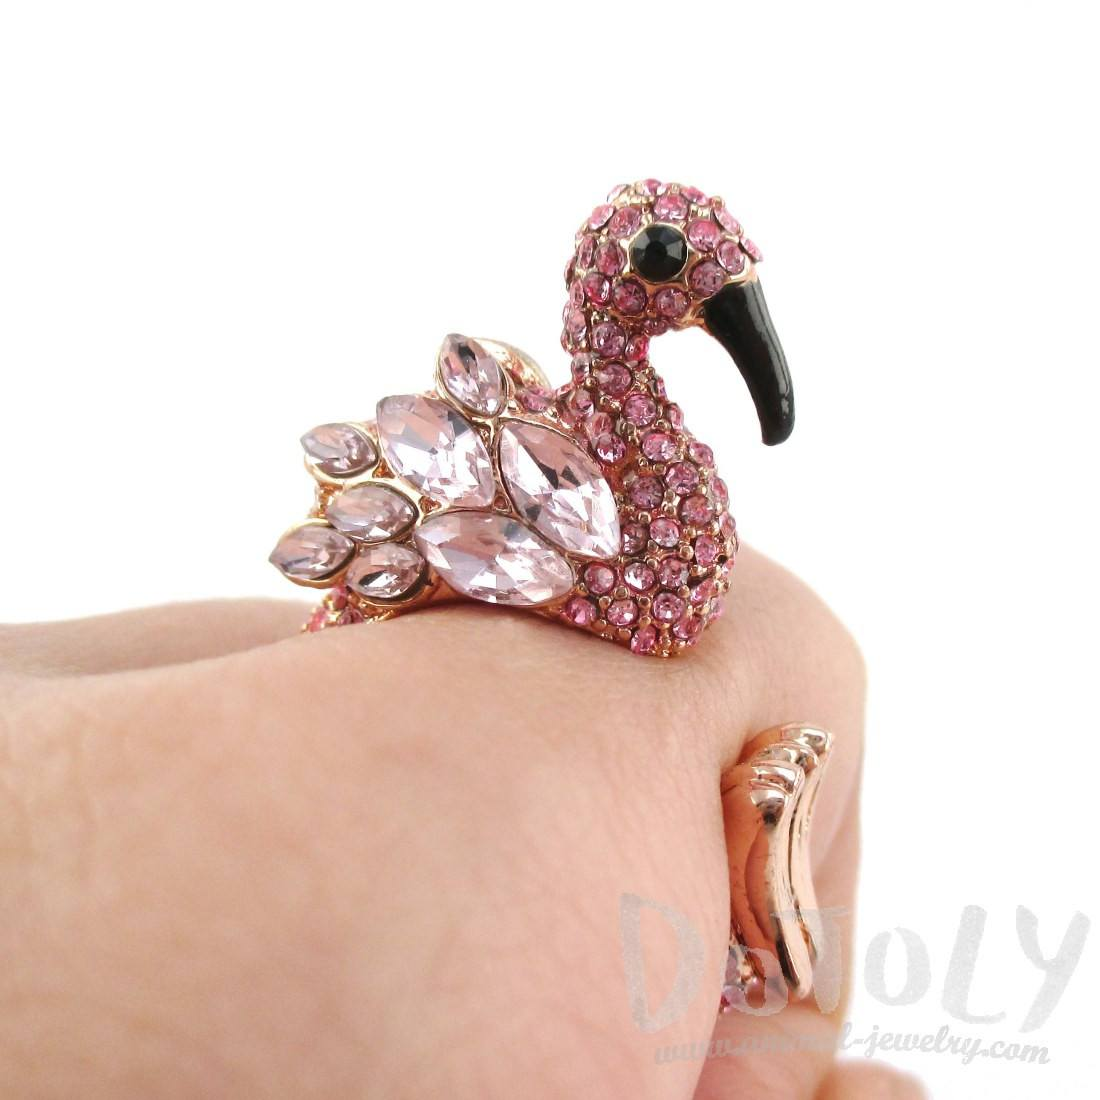 3D Flamingo Shaped Animal Ring in Pink with Rhinestones